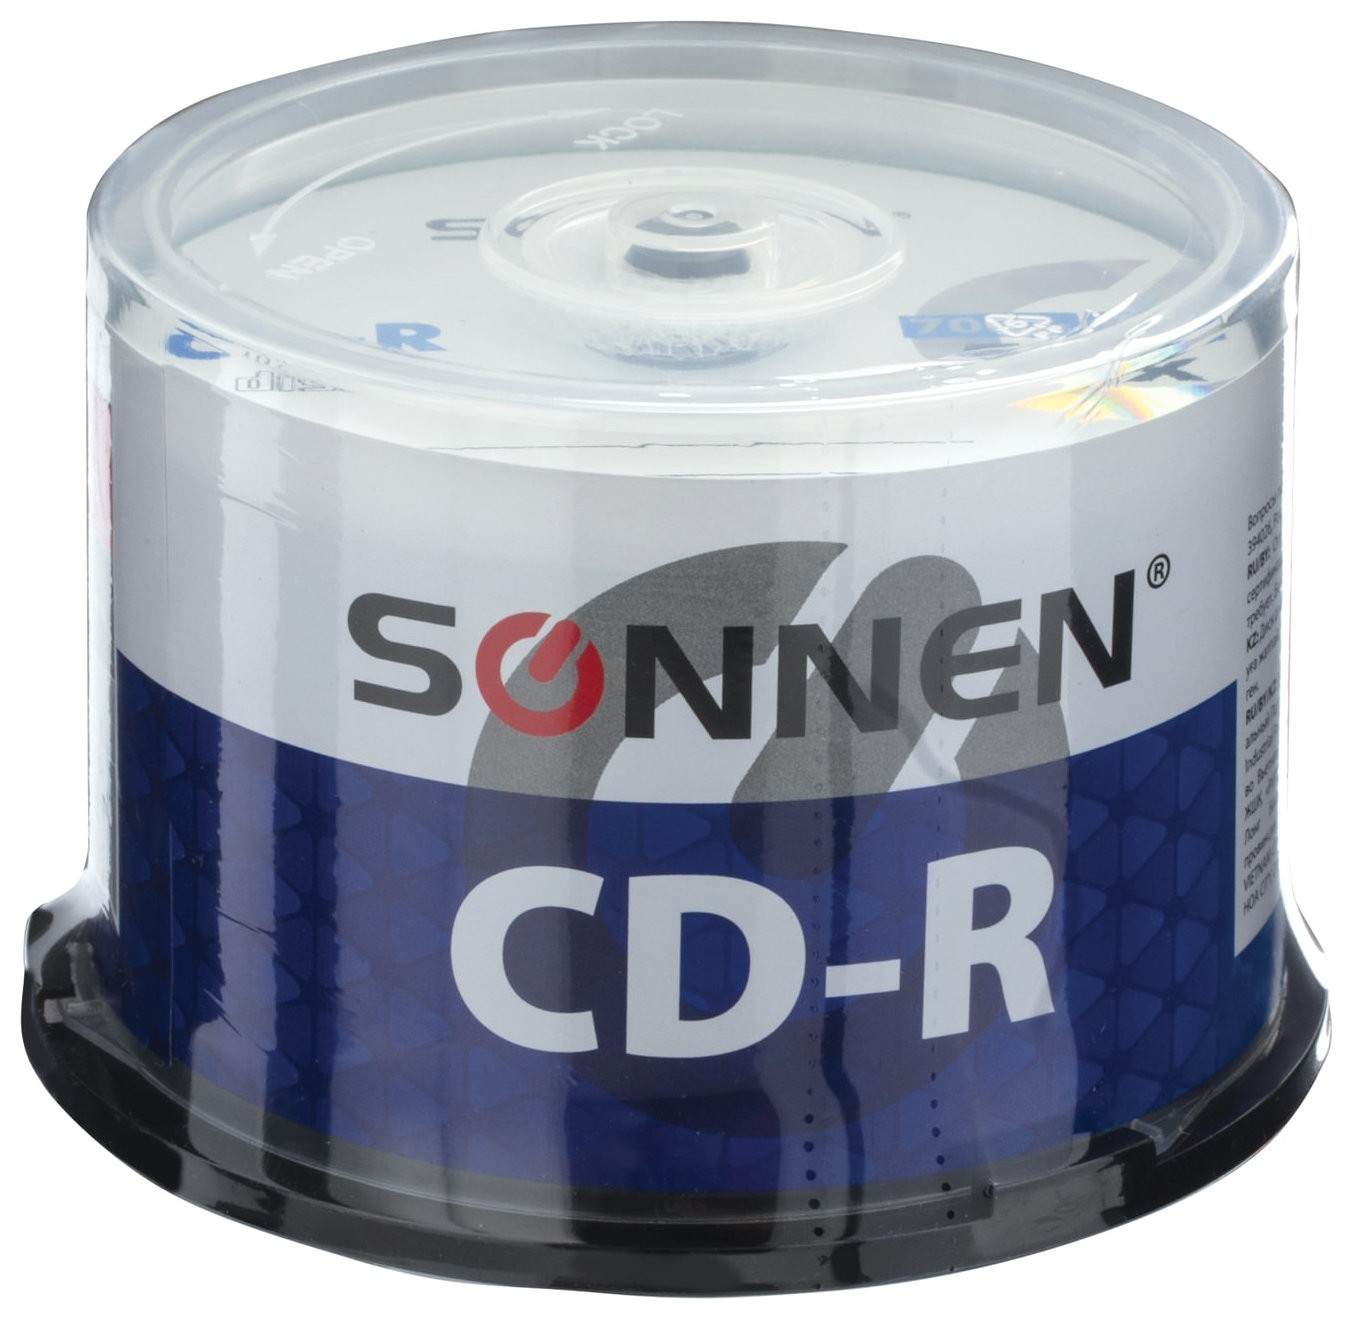 Диски CD-R SONNEN 700 Mb 52x Cake Box, комплект 50 шт.  Sonnen